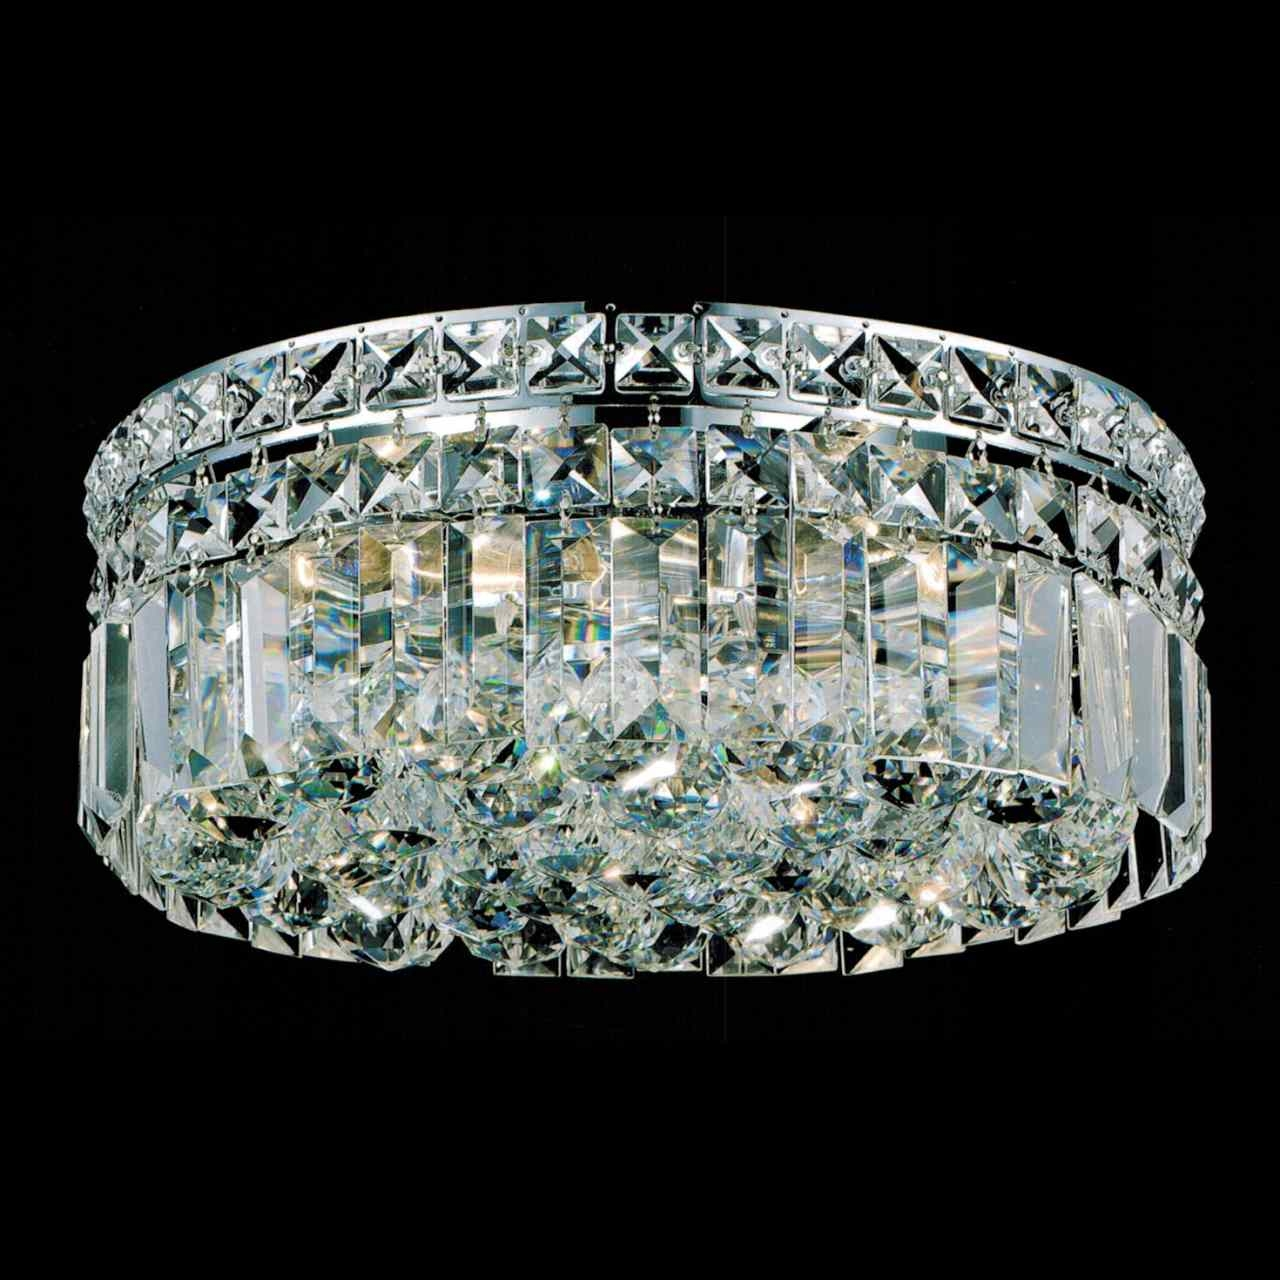 Brizzo Lighting Stores 12 Bossolo Transitional Crystal Round Intended For Flush Chandelier (#3 of 12)